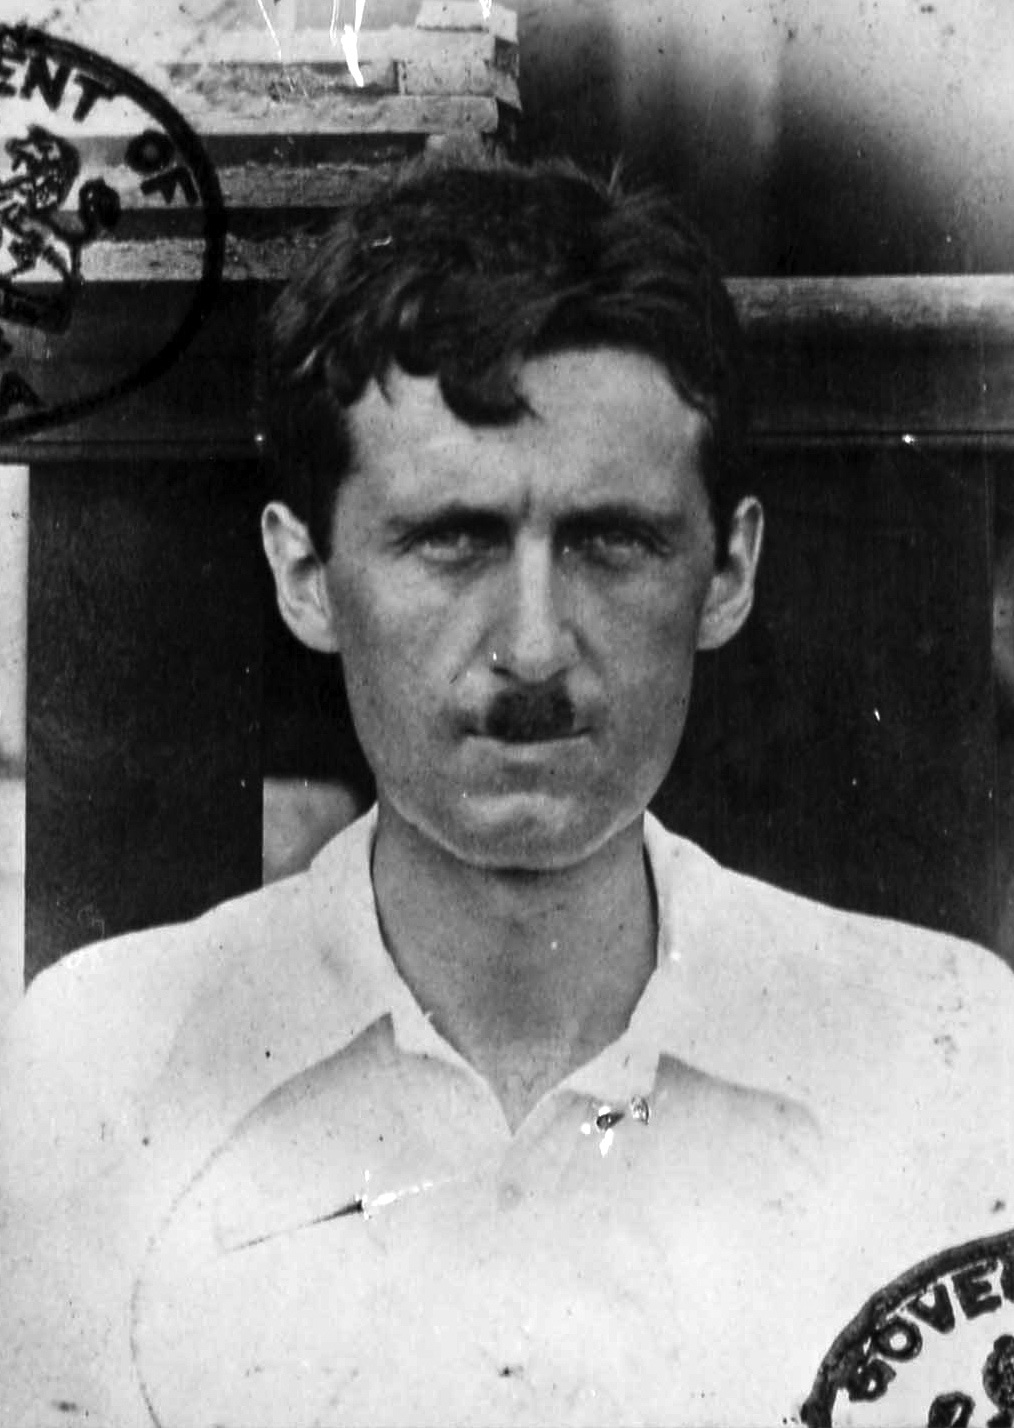 A comprehensive life history and works of george orwell